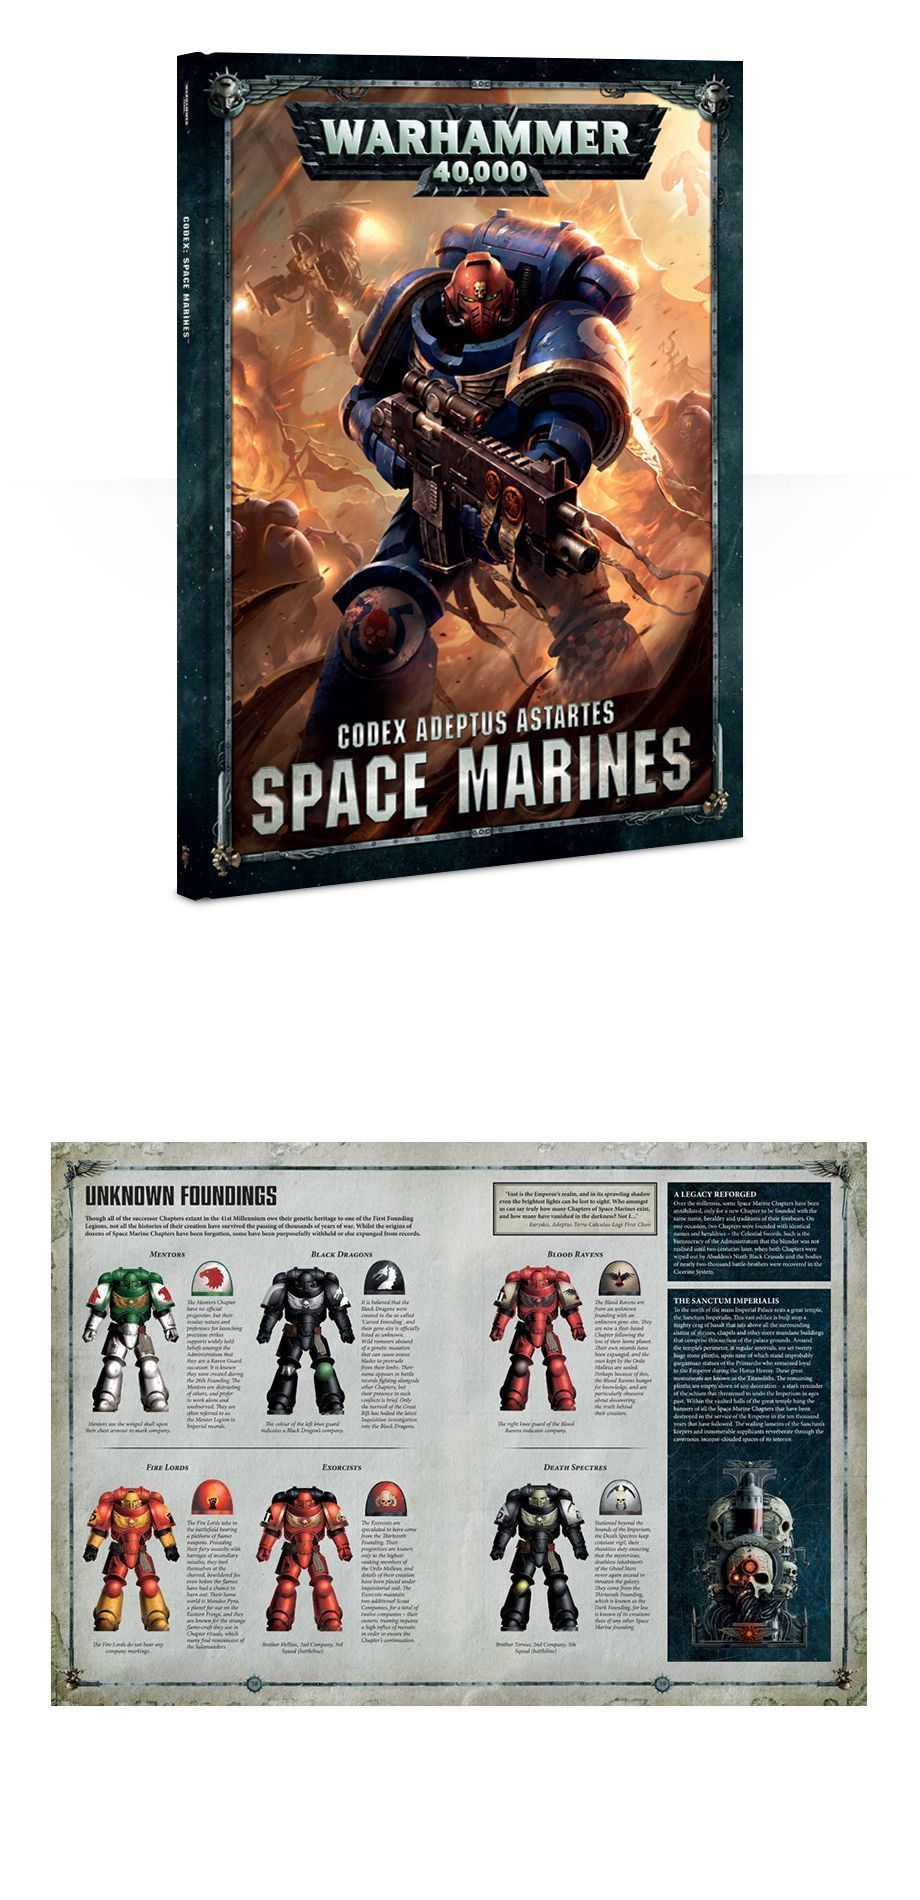 40K Rulebooks and Publications 90944: Warhammer 40K - Codex Adeptus